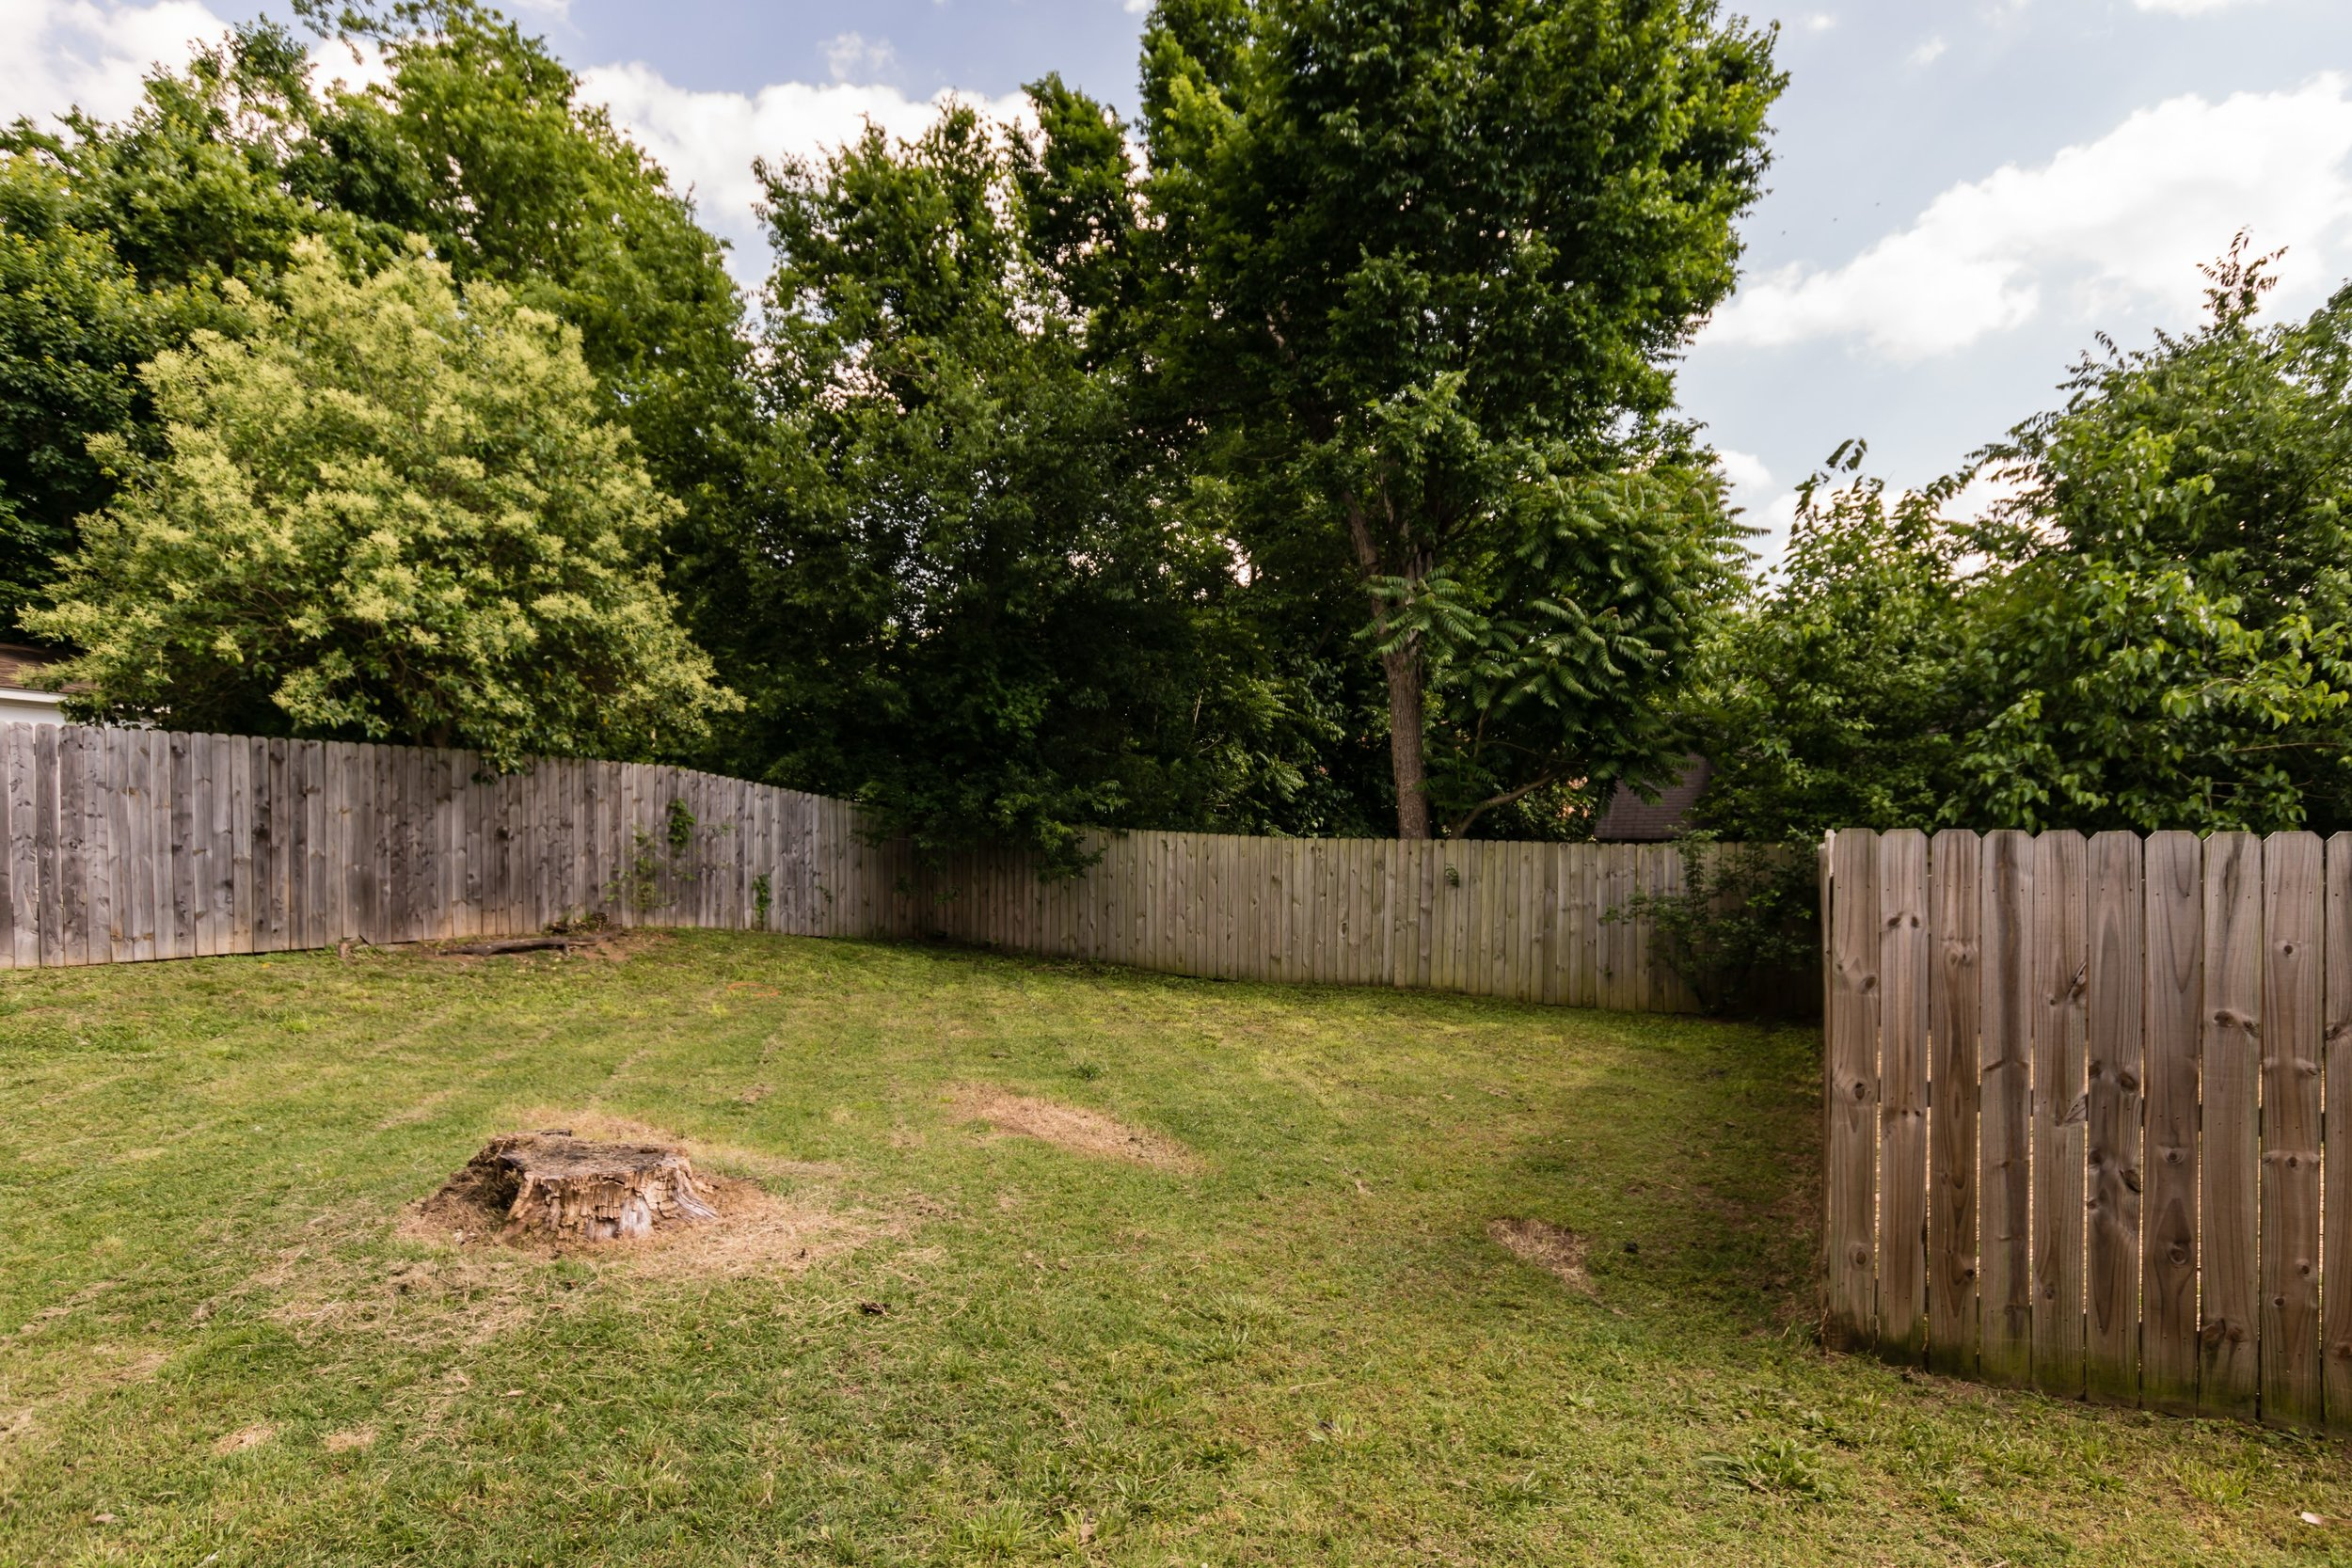 020_Fenced Backyard.jpg